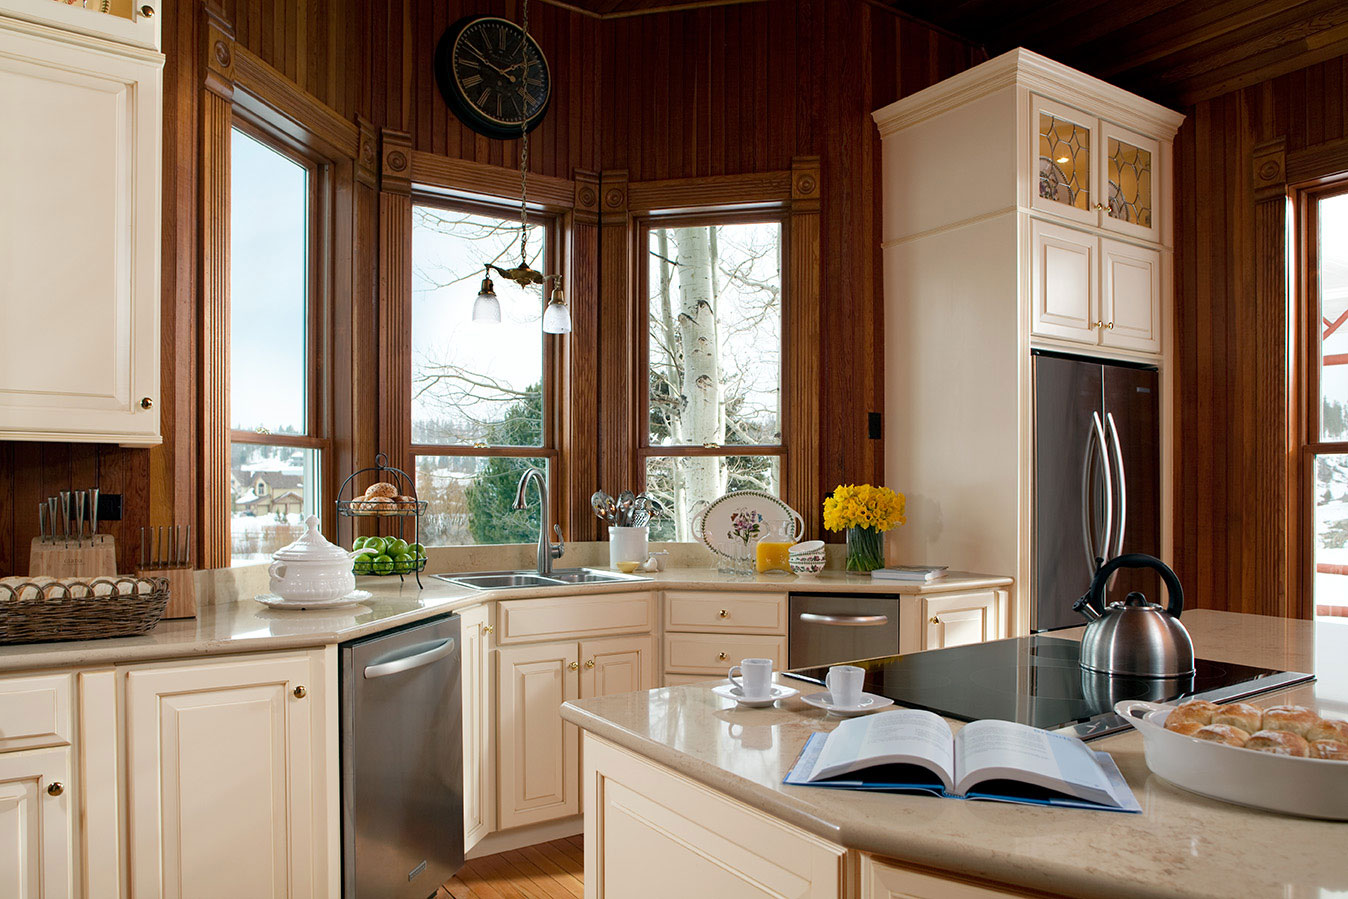 waypoint kitchen cabinets red trash can welcome  new post has been published on kalkunta